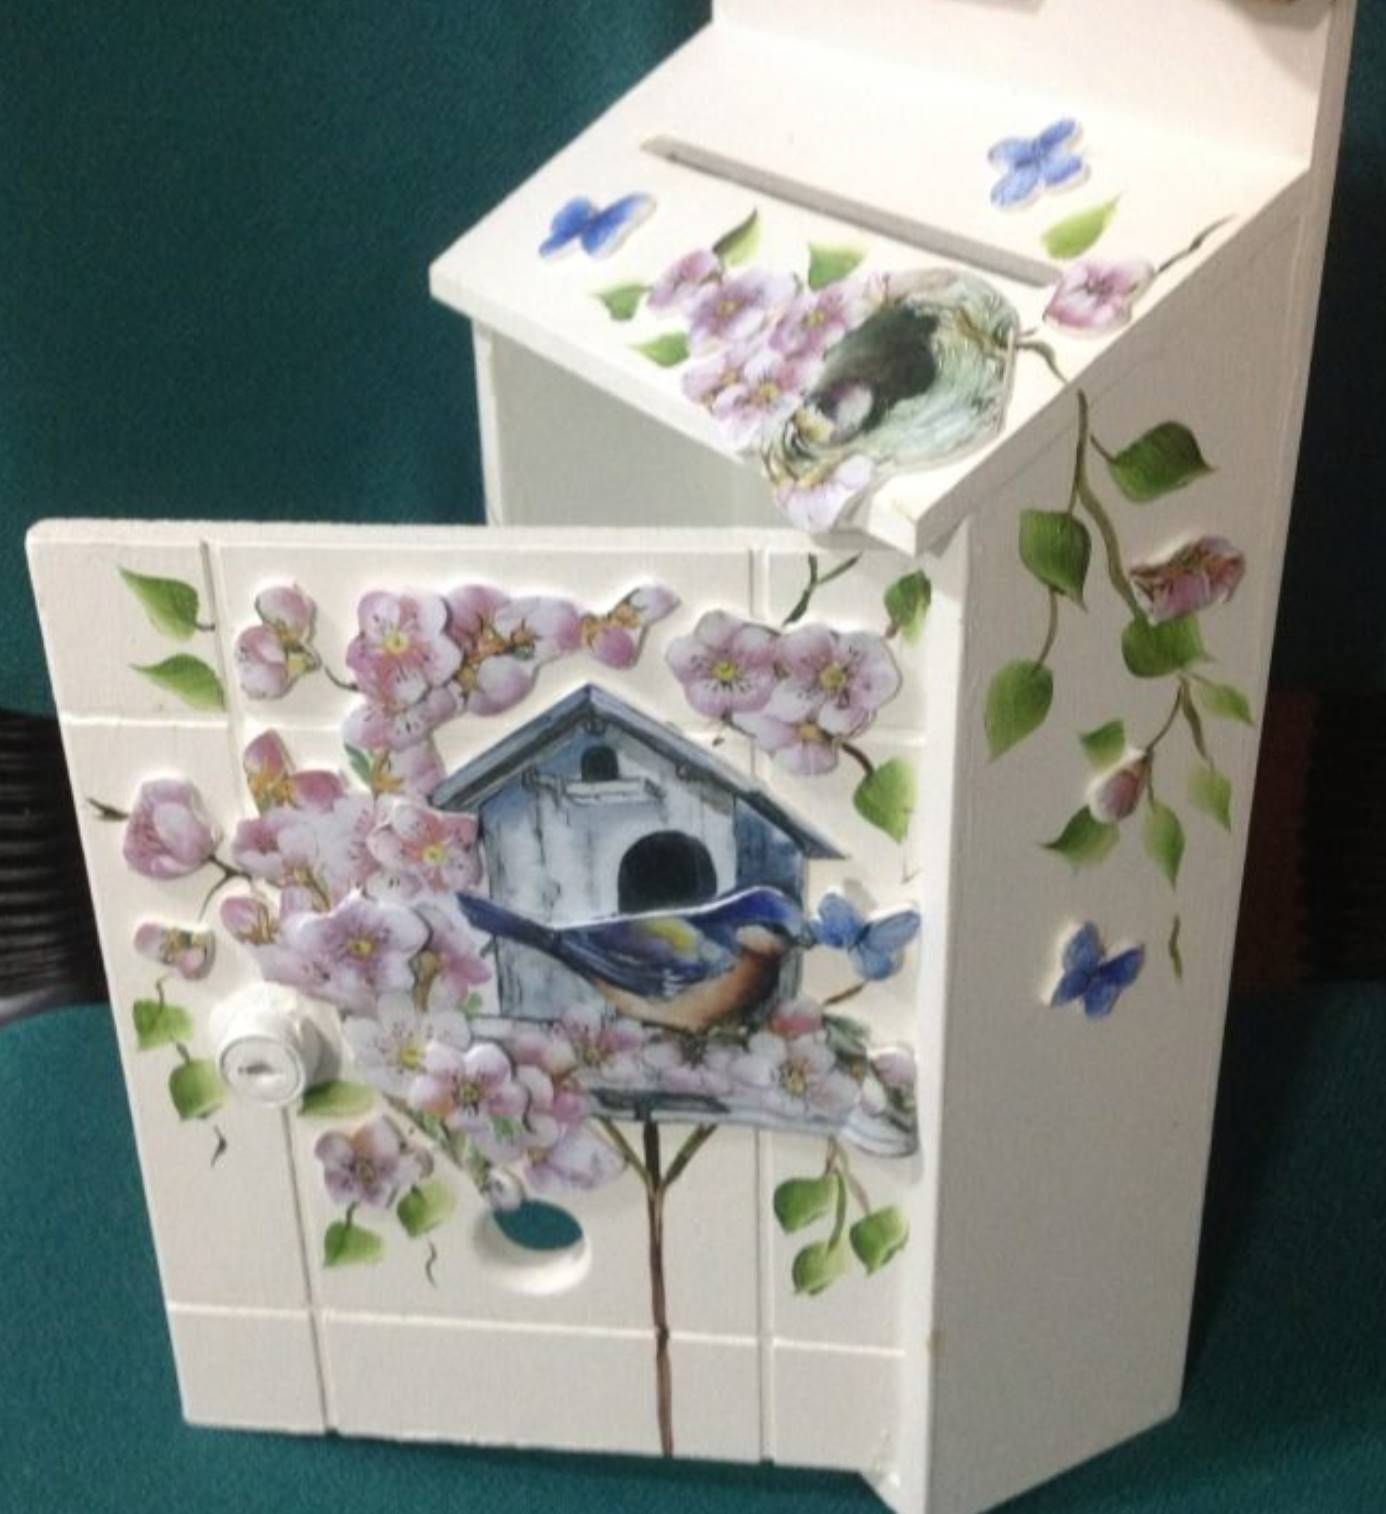 Meral Sanatevi Handmade Painting Craft House Ahşap